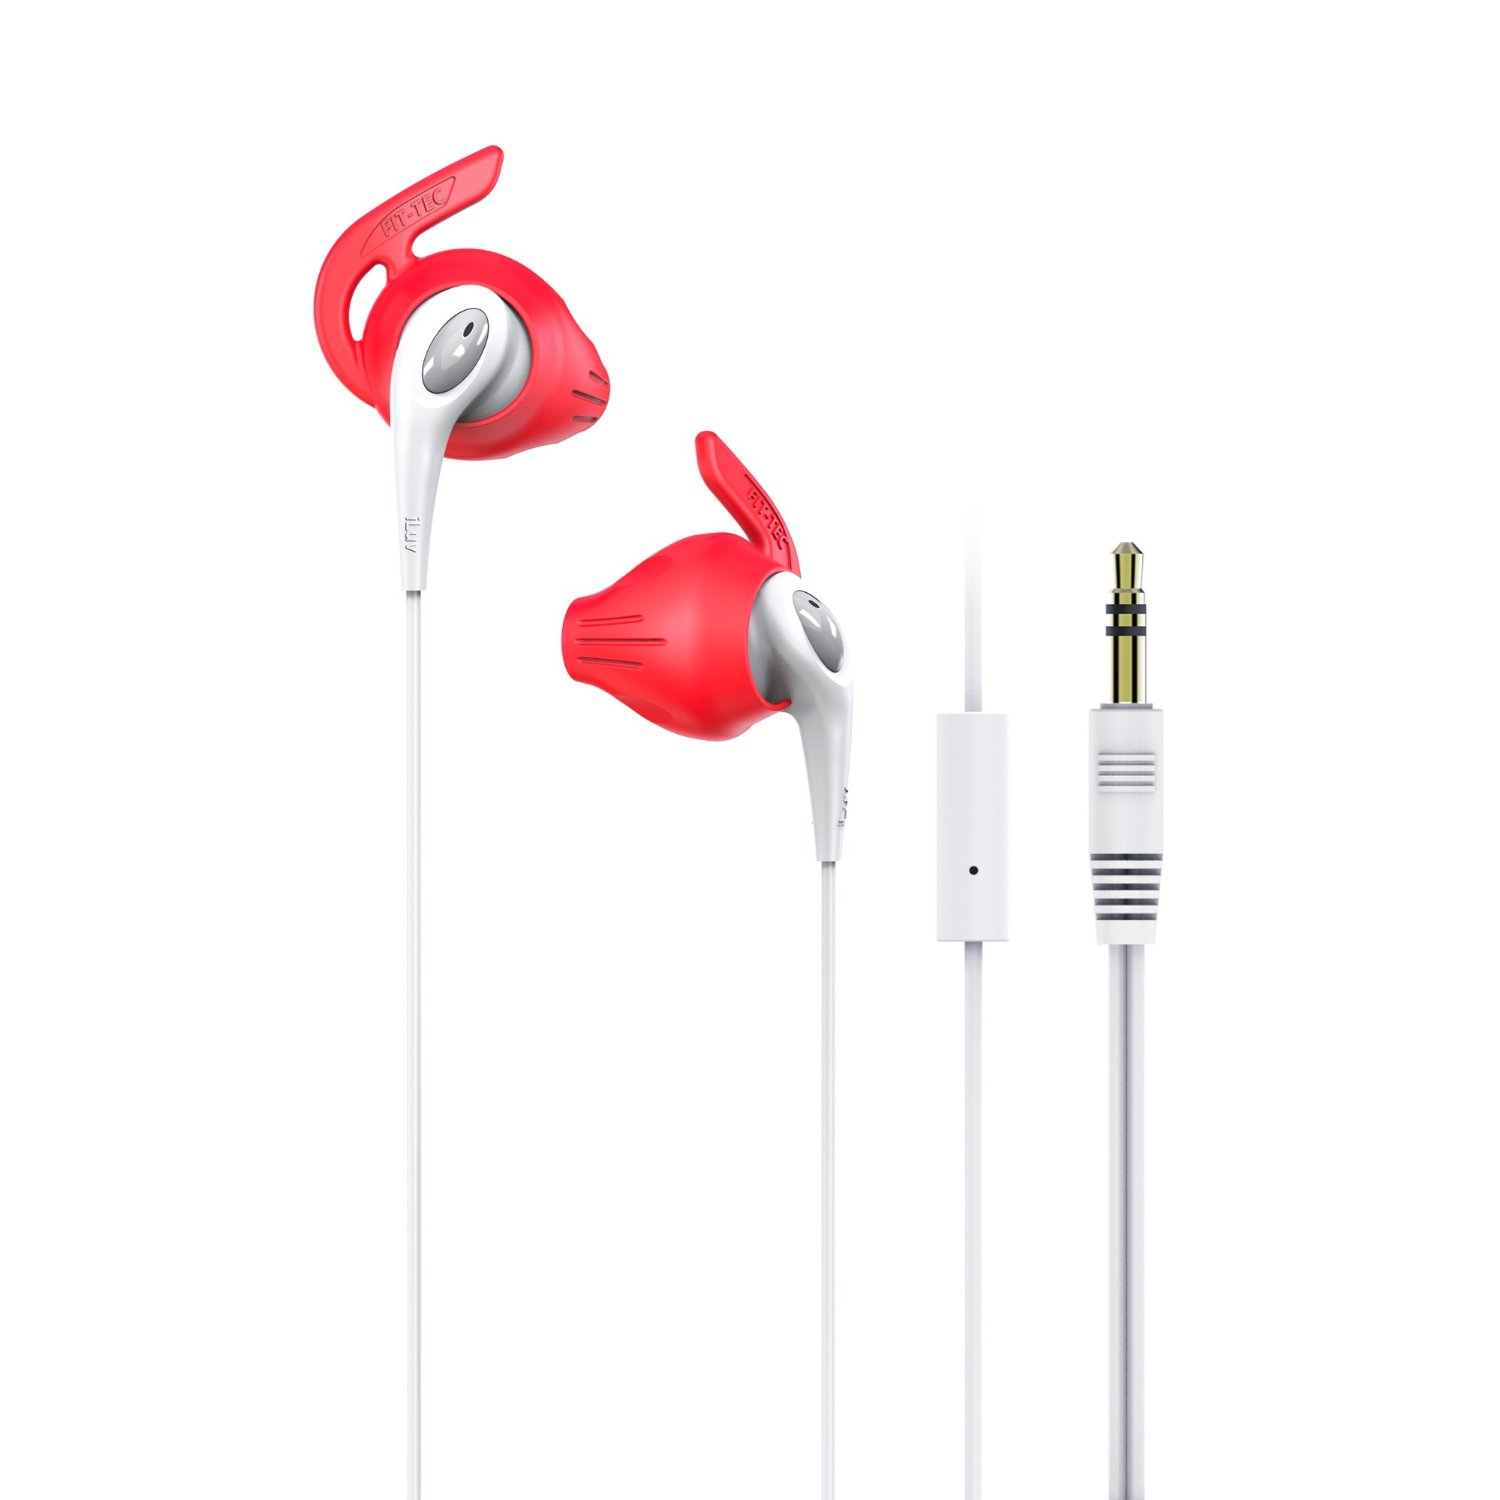 FITACTRUN FitActive Run High Fidelity Stereo Sports Earphones with Mic and Remote for iPhone and Most Android Devices